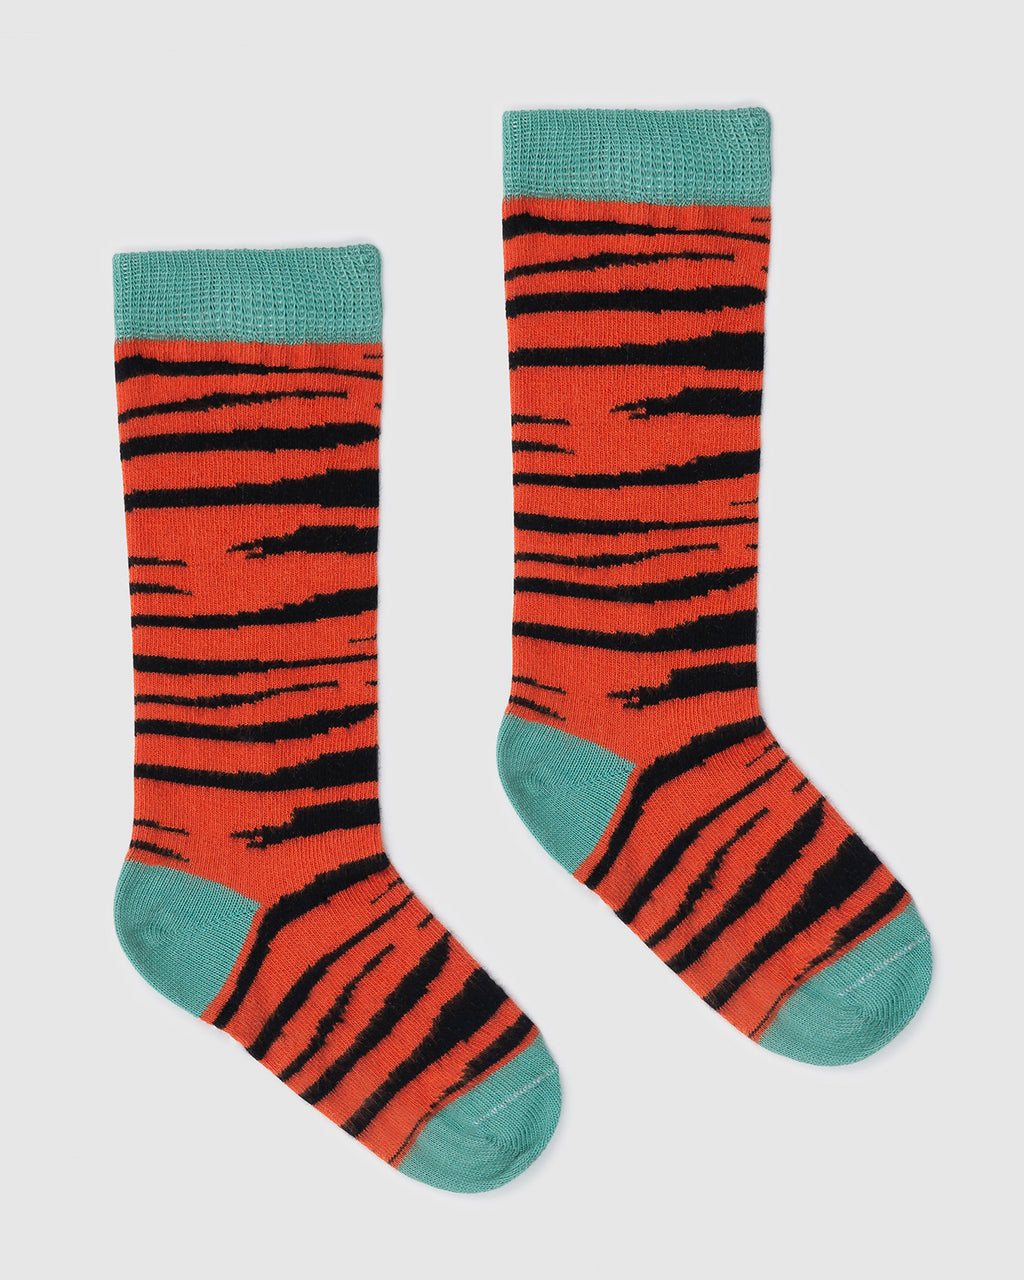 Tiger Skin Socks